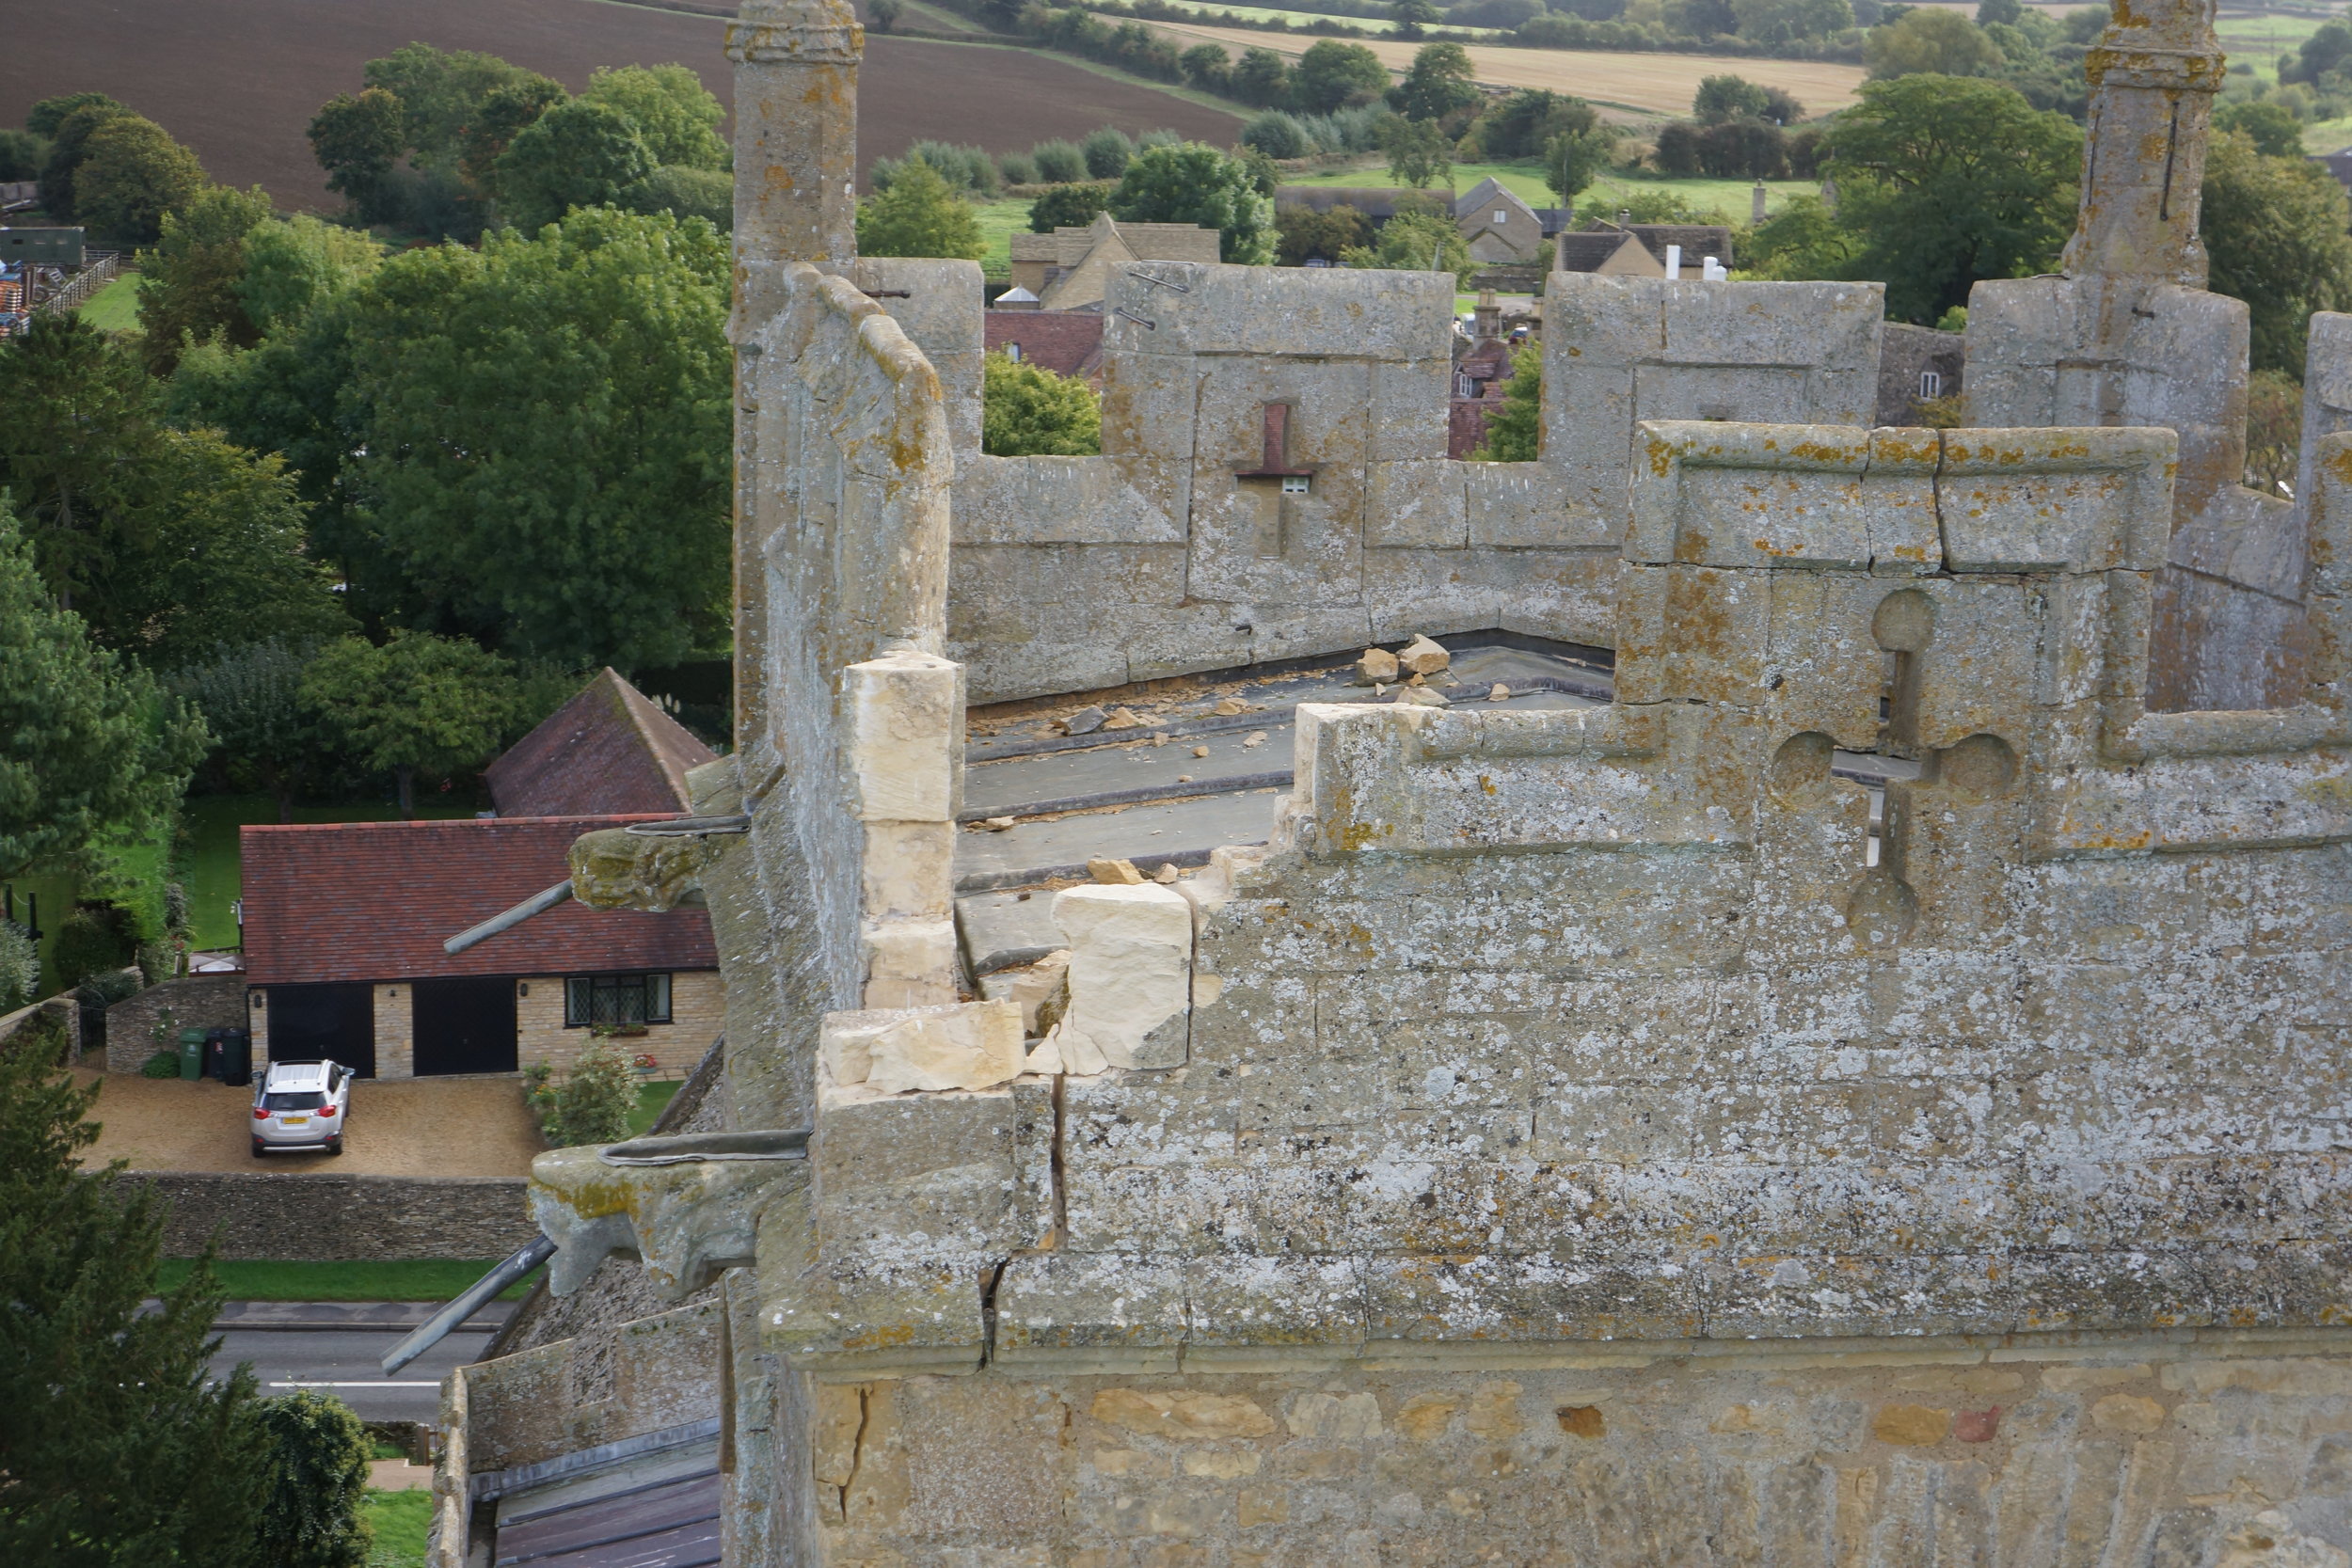 Drone Survey of lightning damage to a Church